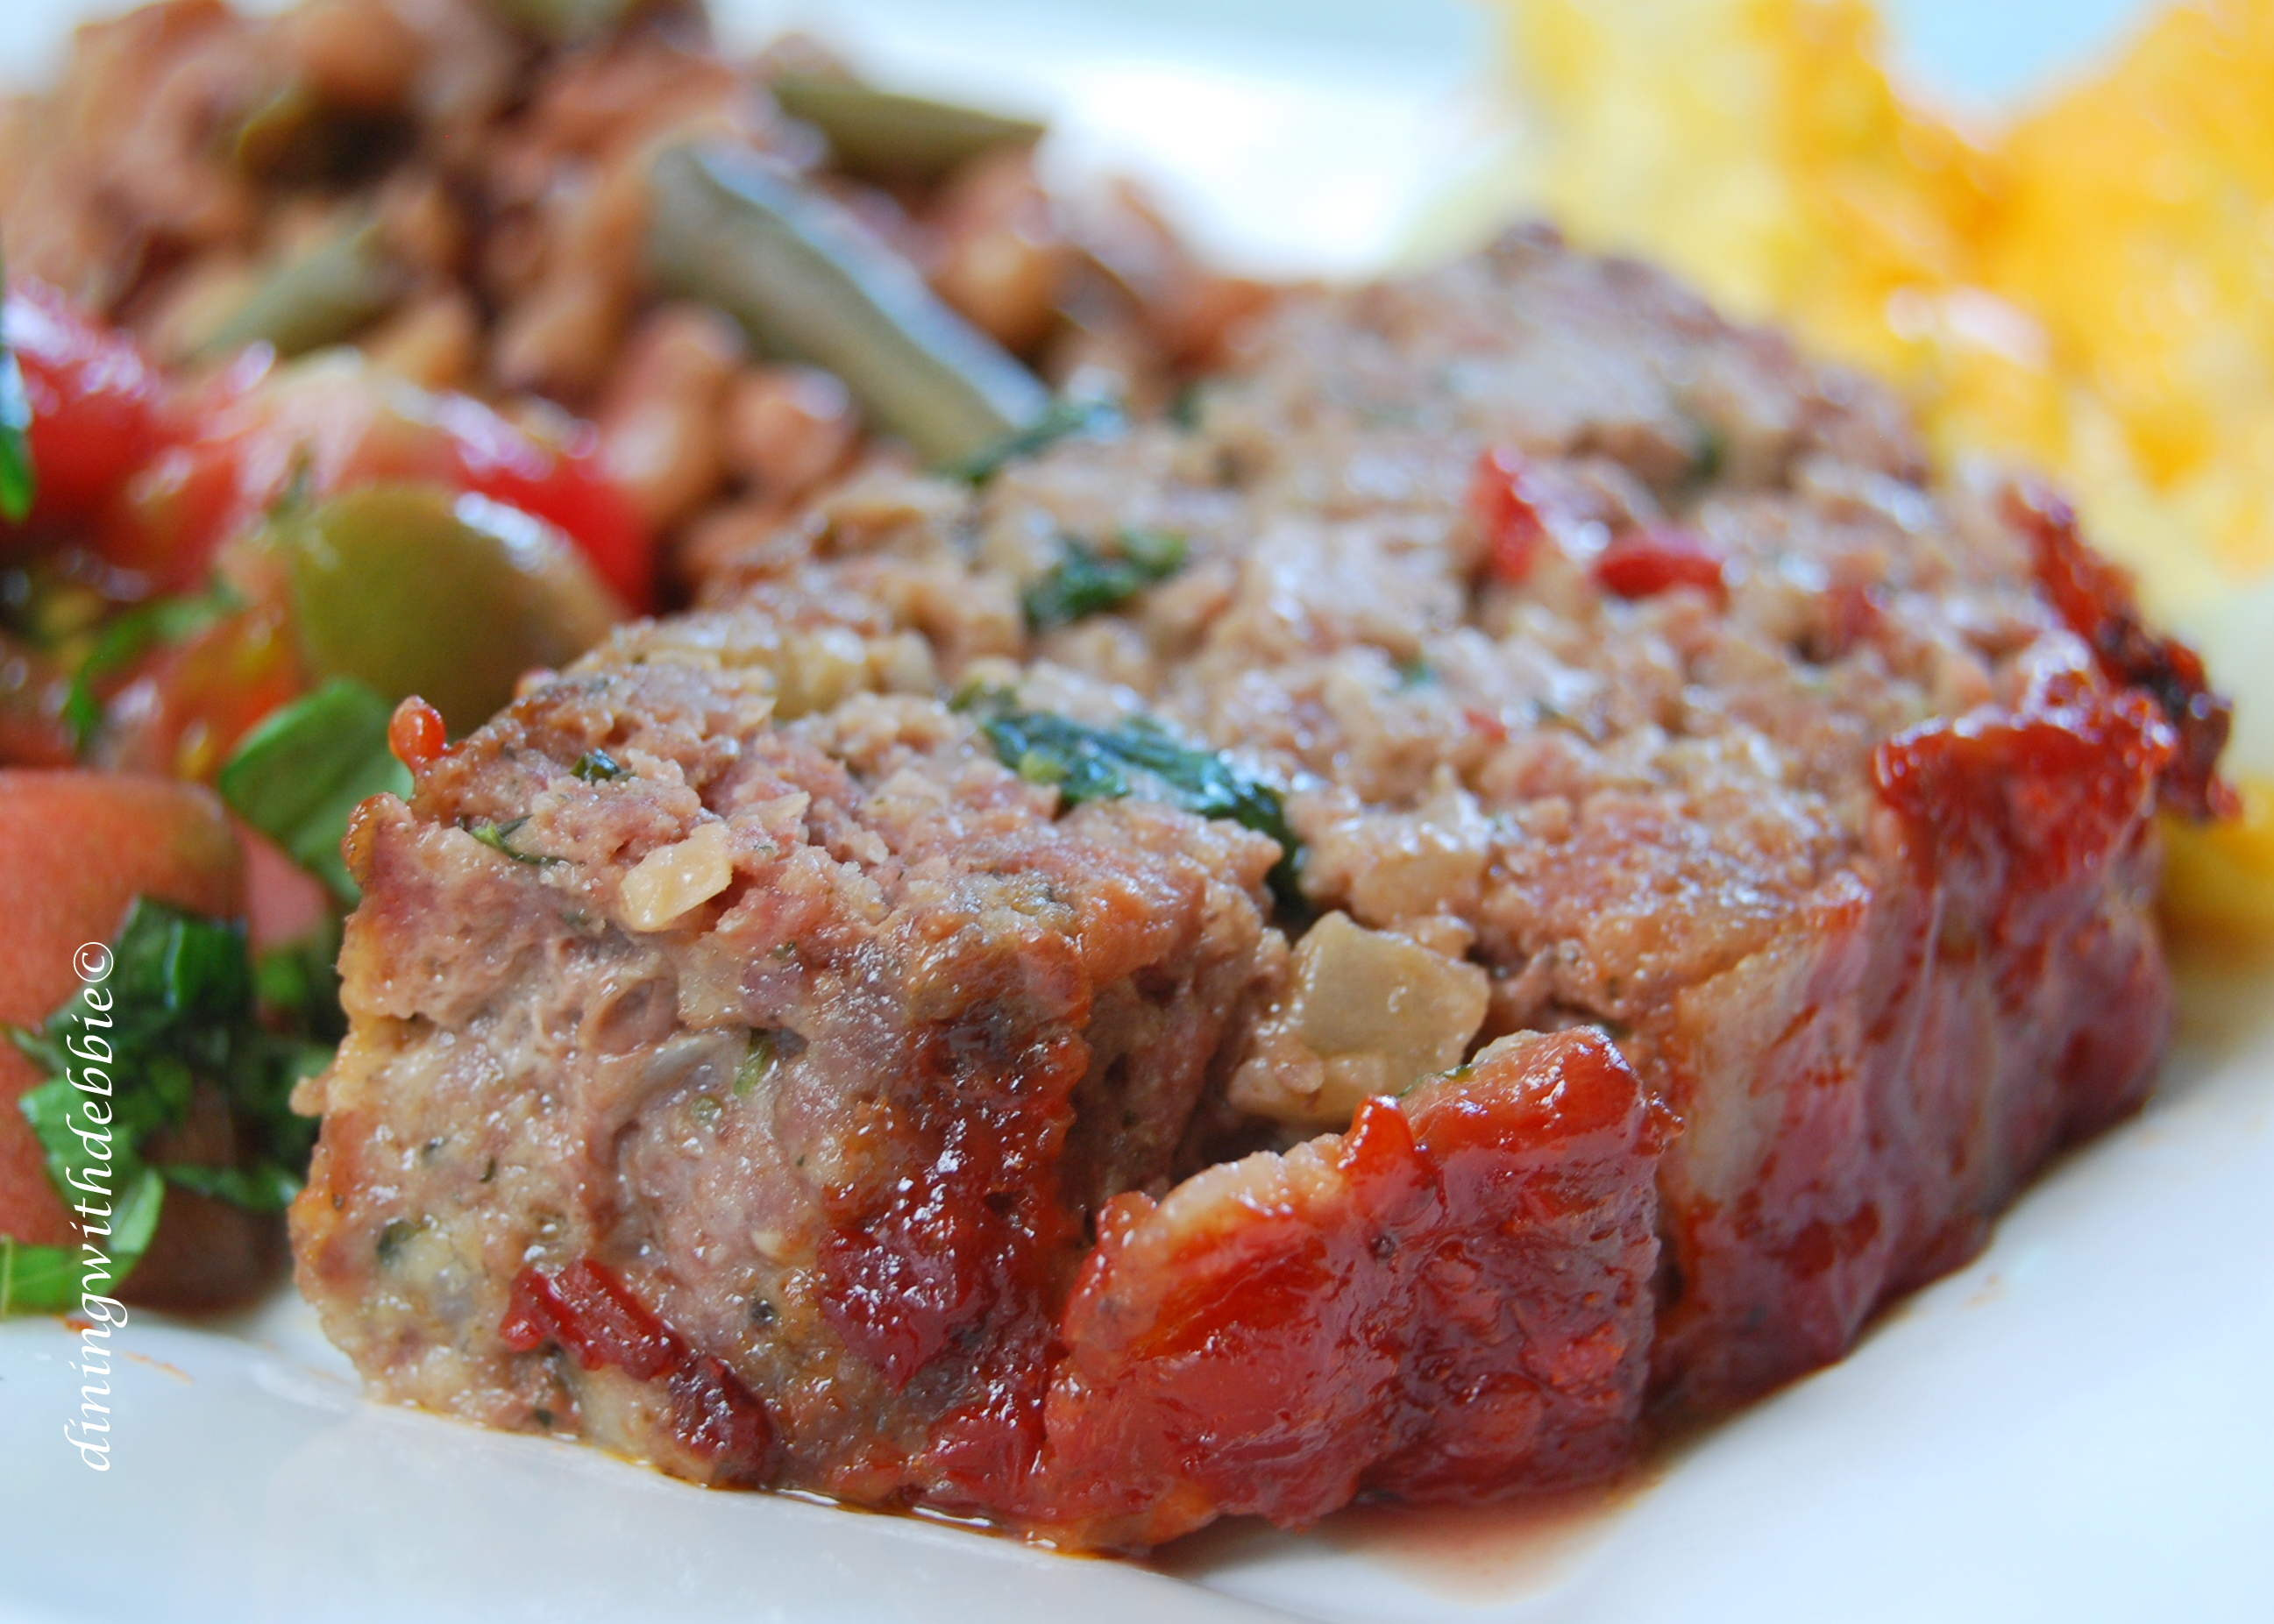 Dining With Debbie | The Very Best Meatloaf - Dining With Debbie